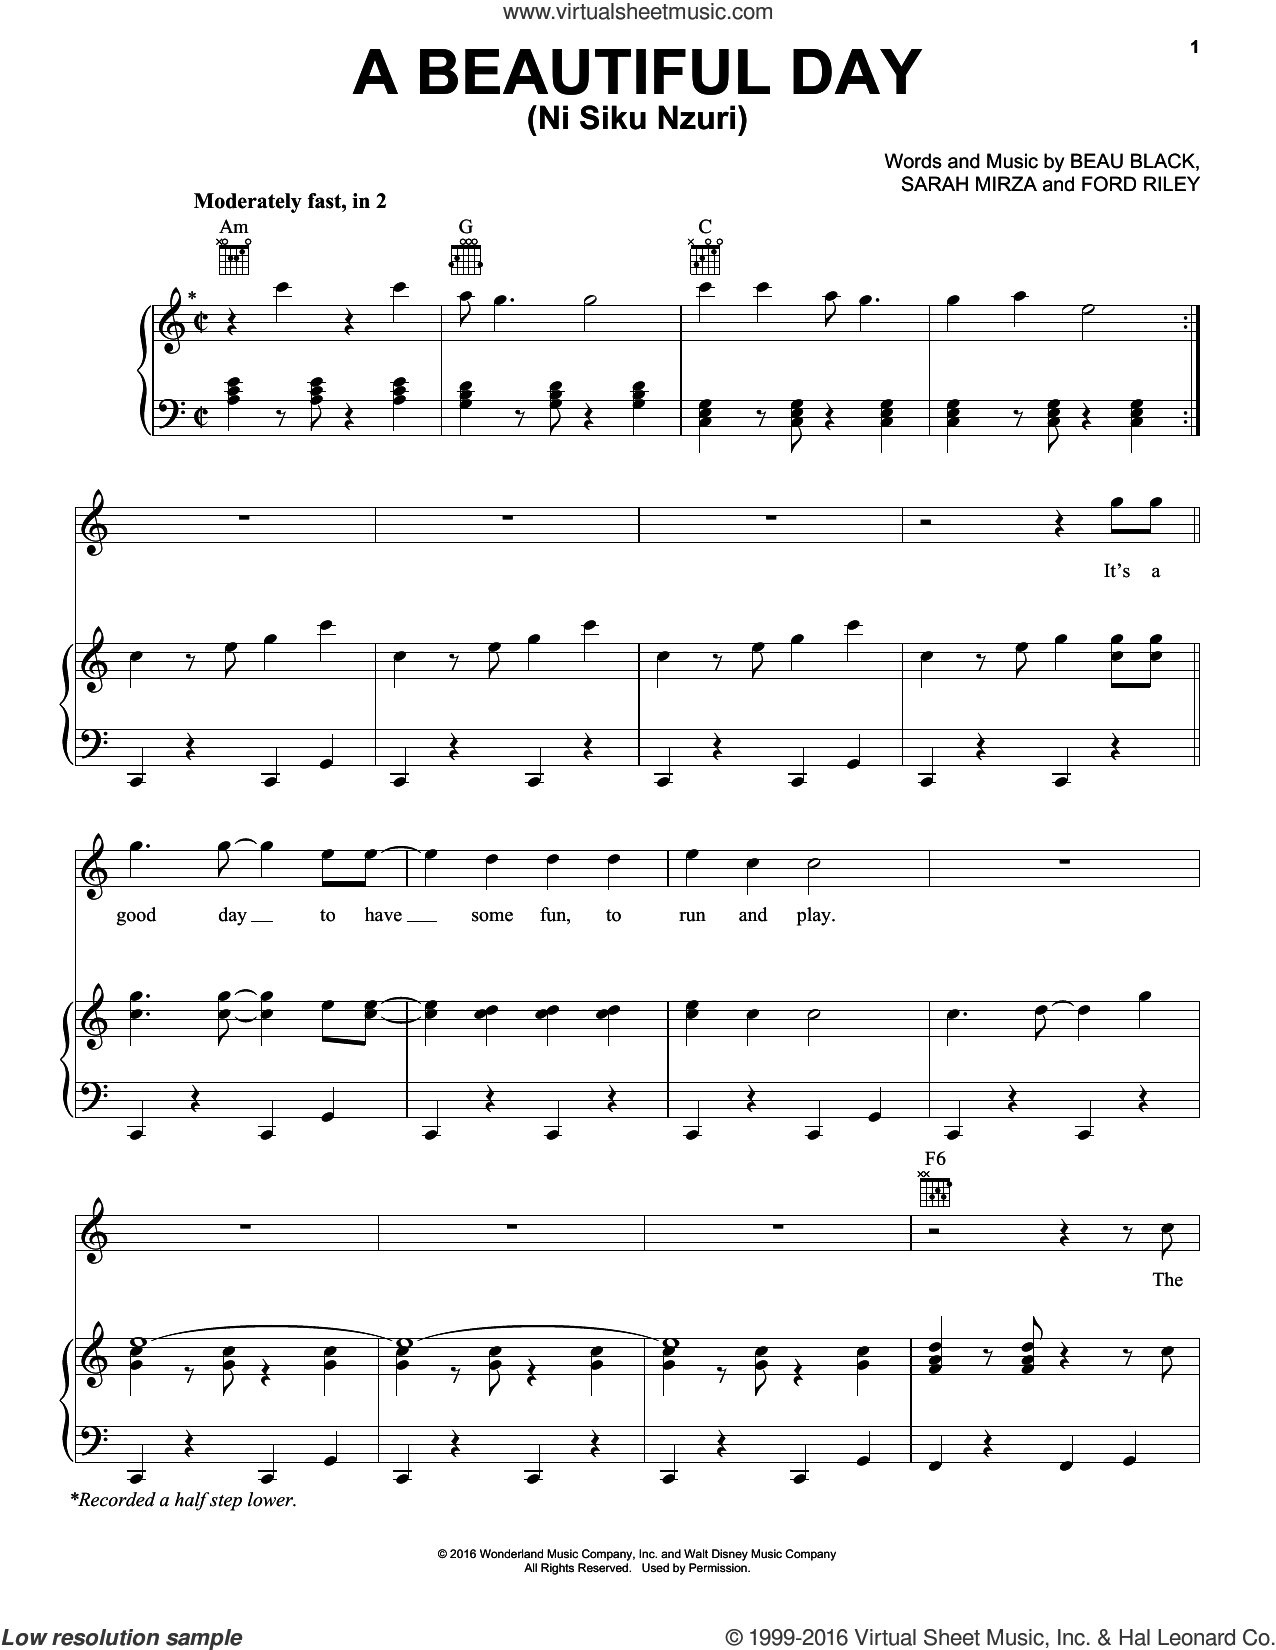 A Beautiful Day sheet music for voice, piano or guitar by Ford Riley, Beau Black and Sarah Mirza, intermediate